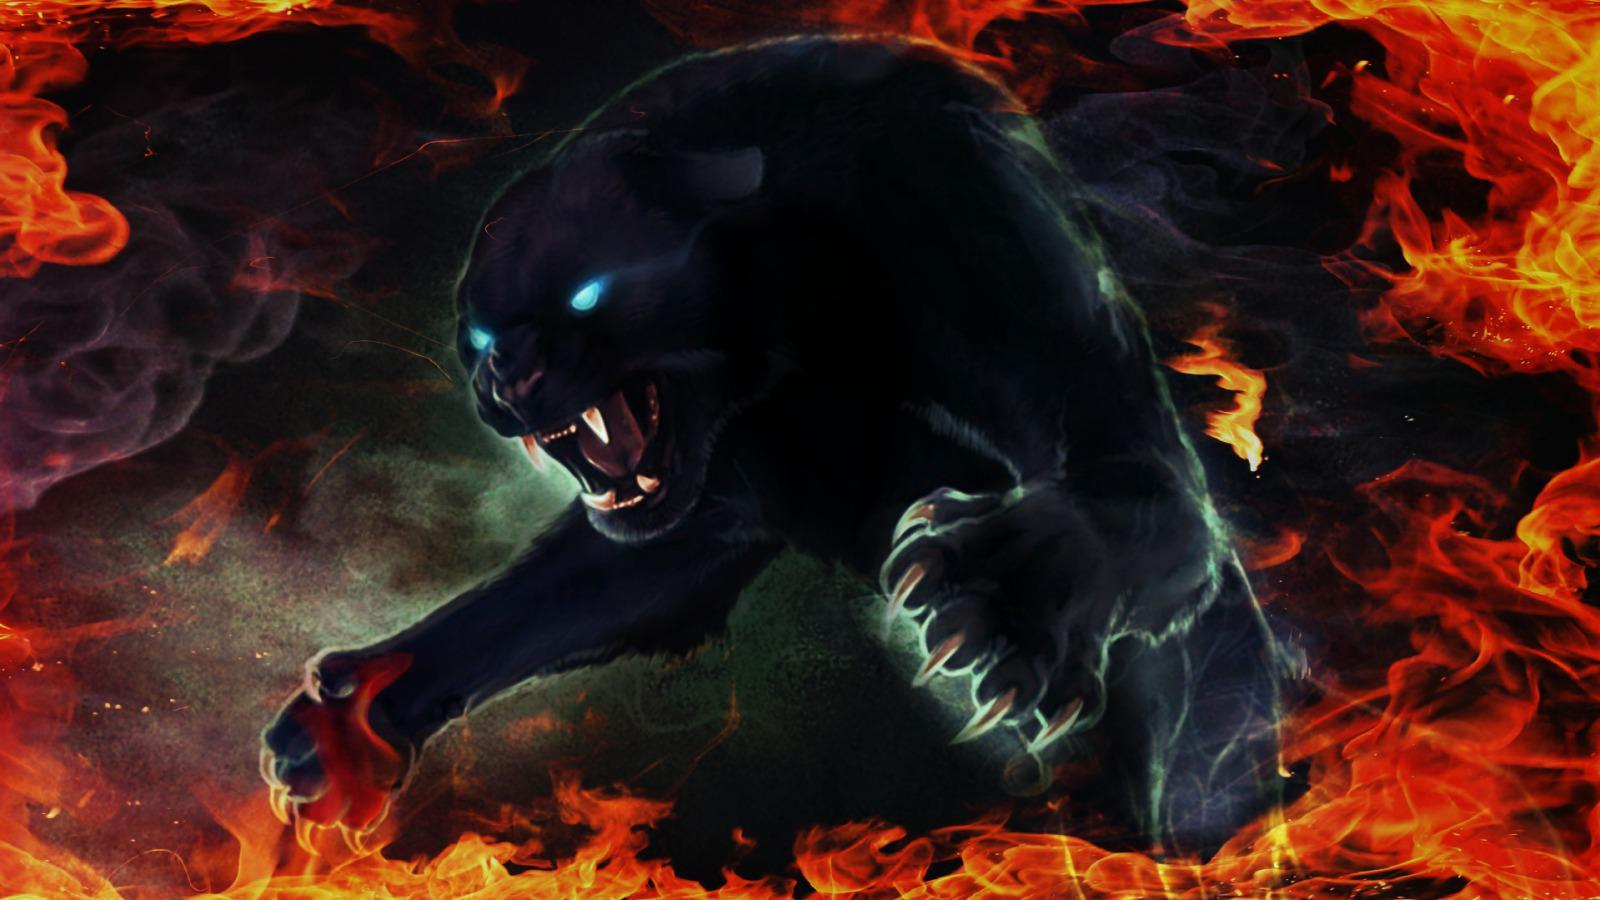 Black Panther Live Wallpaper Posted By Ryan Anderson